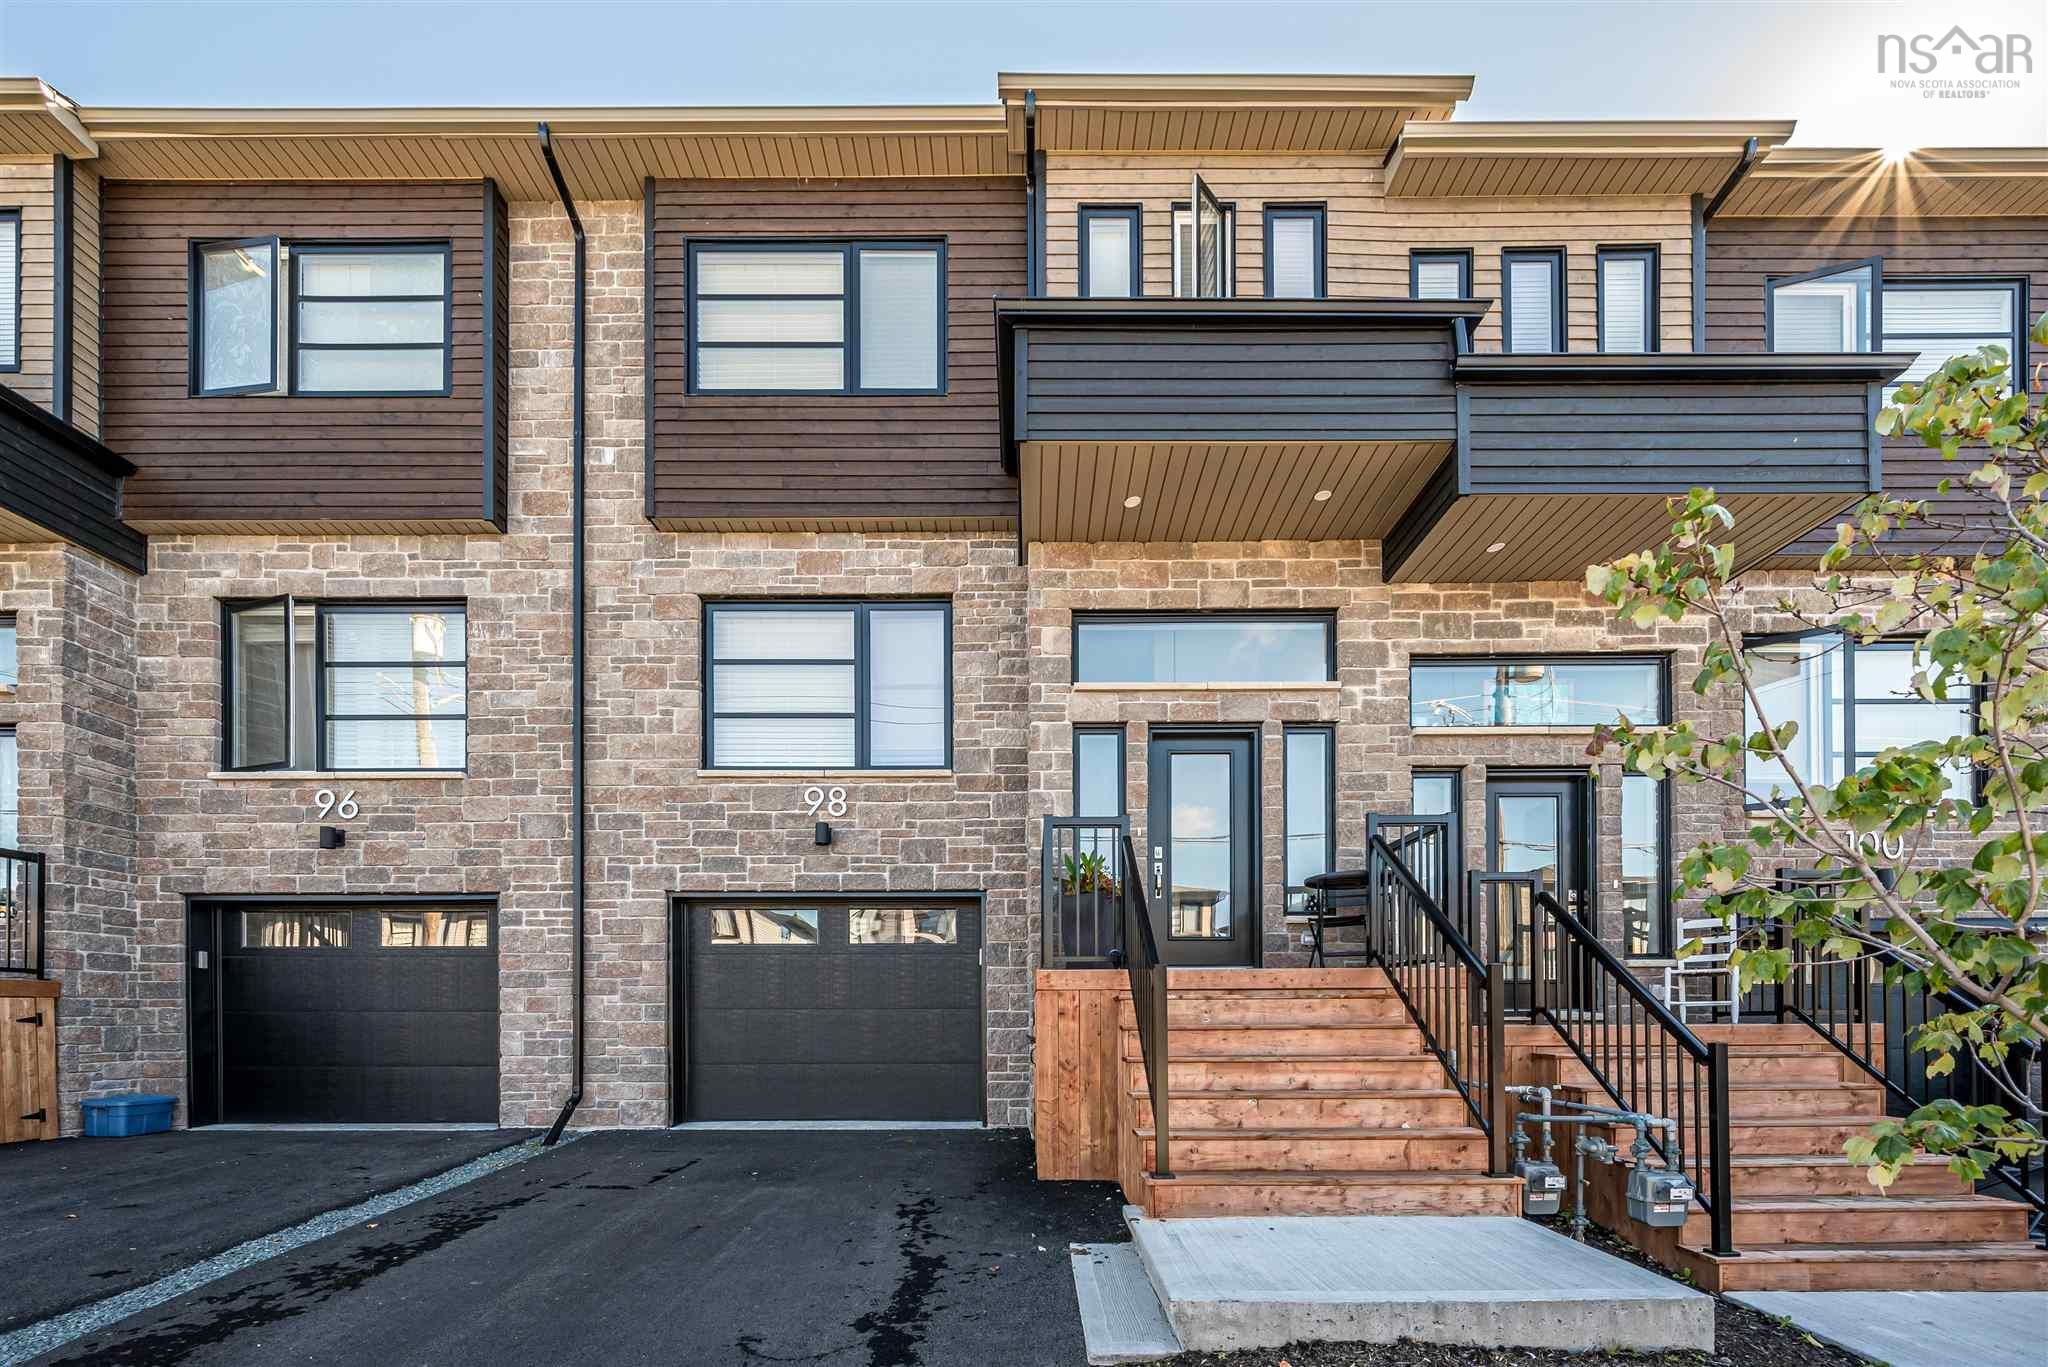 Main Photo: 98 Tilbury Avenue in West Bedford: 20-Bedford Residential for sale (Halifax-Dartmouth)  : MLS®# 202124739